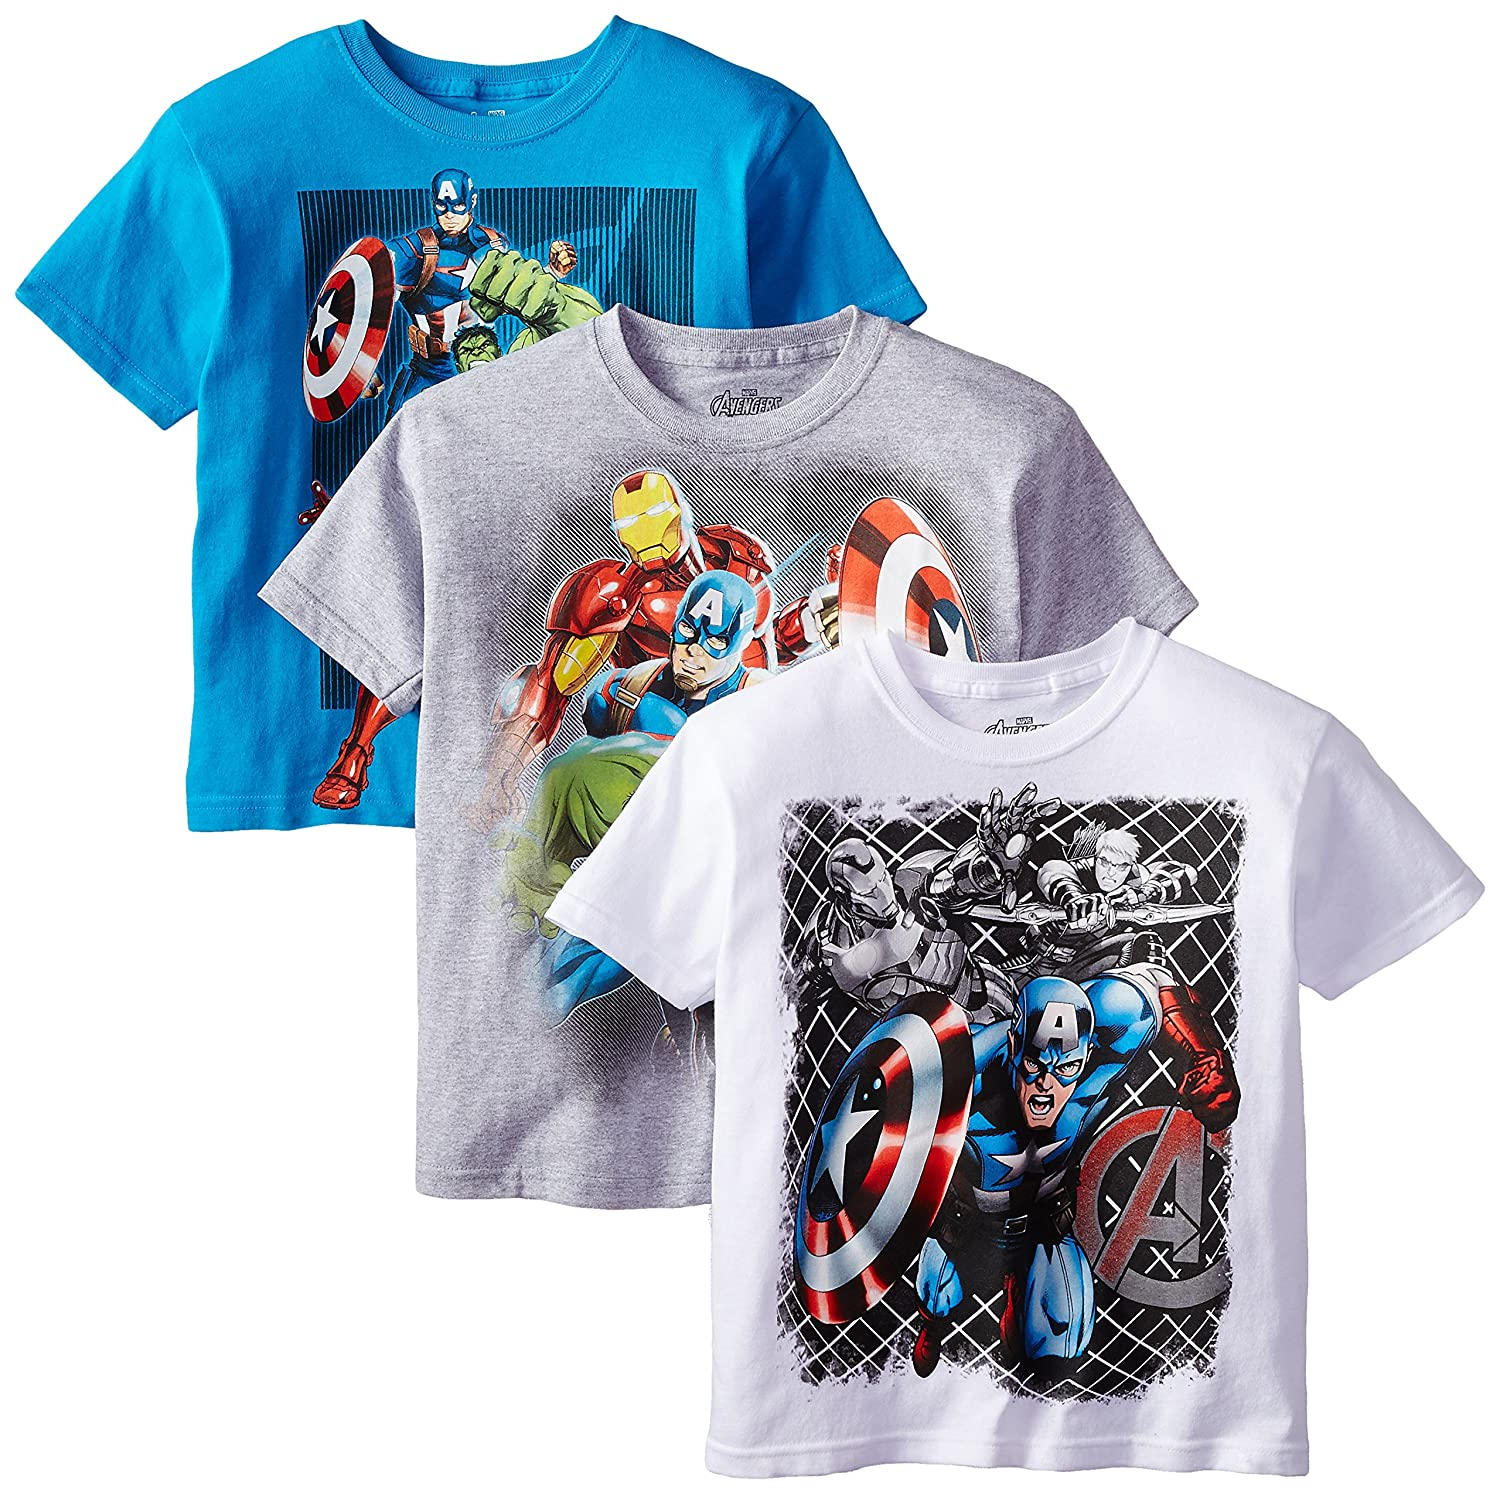 "Marvel Boys' 3-Pack Avengers T-Shirt ""Assorted Colors"" C-Life Group Boys 2 - 7"